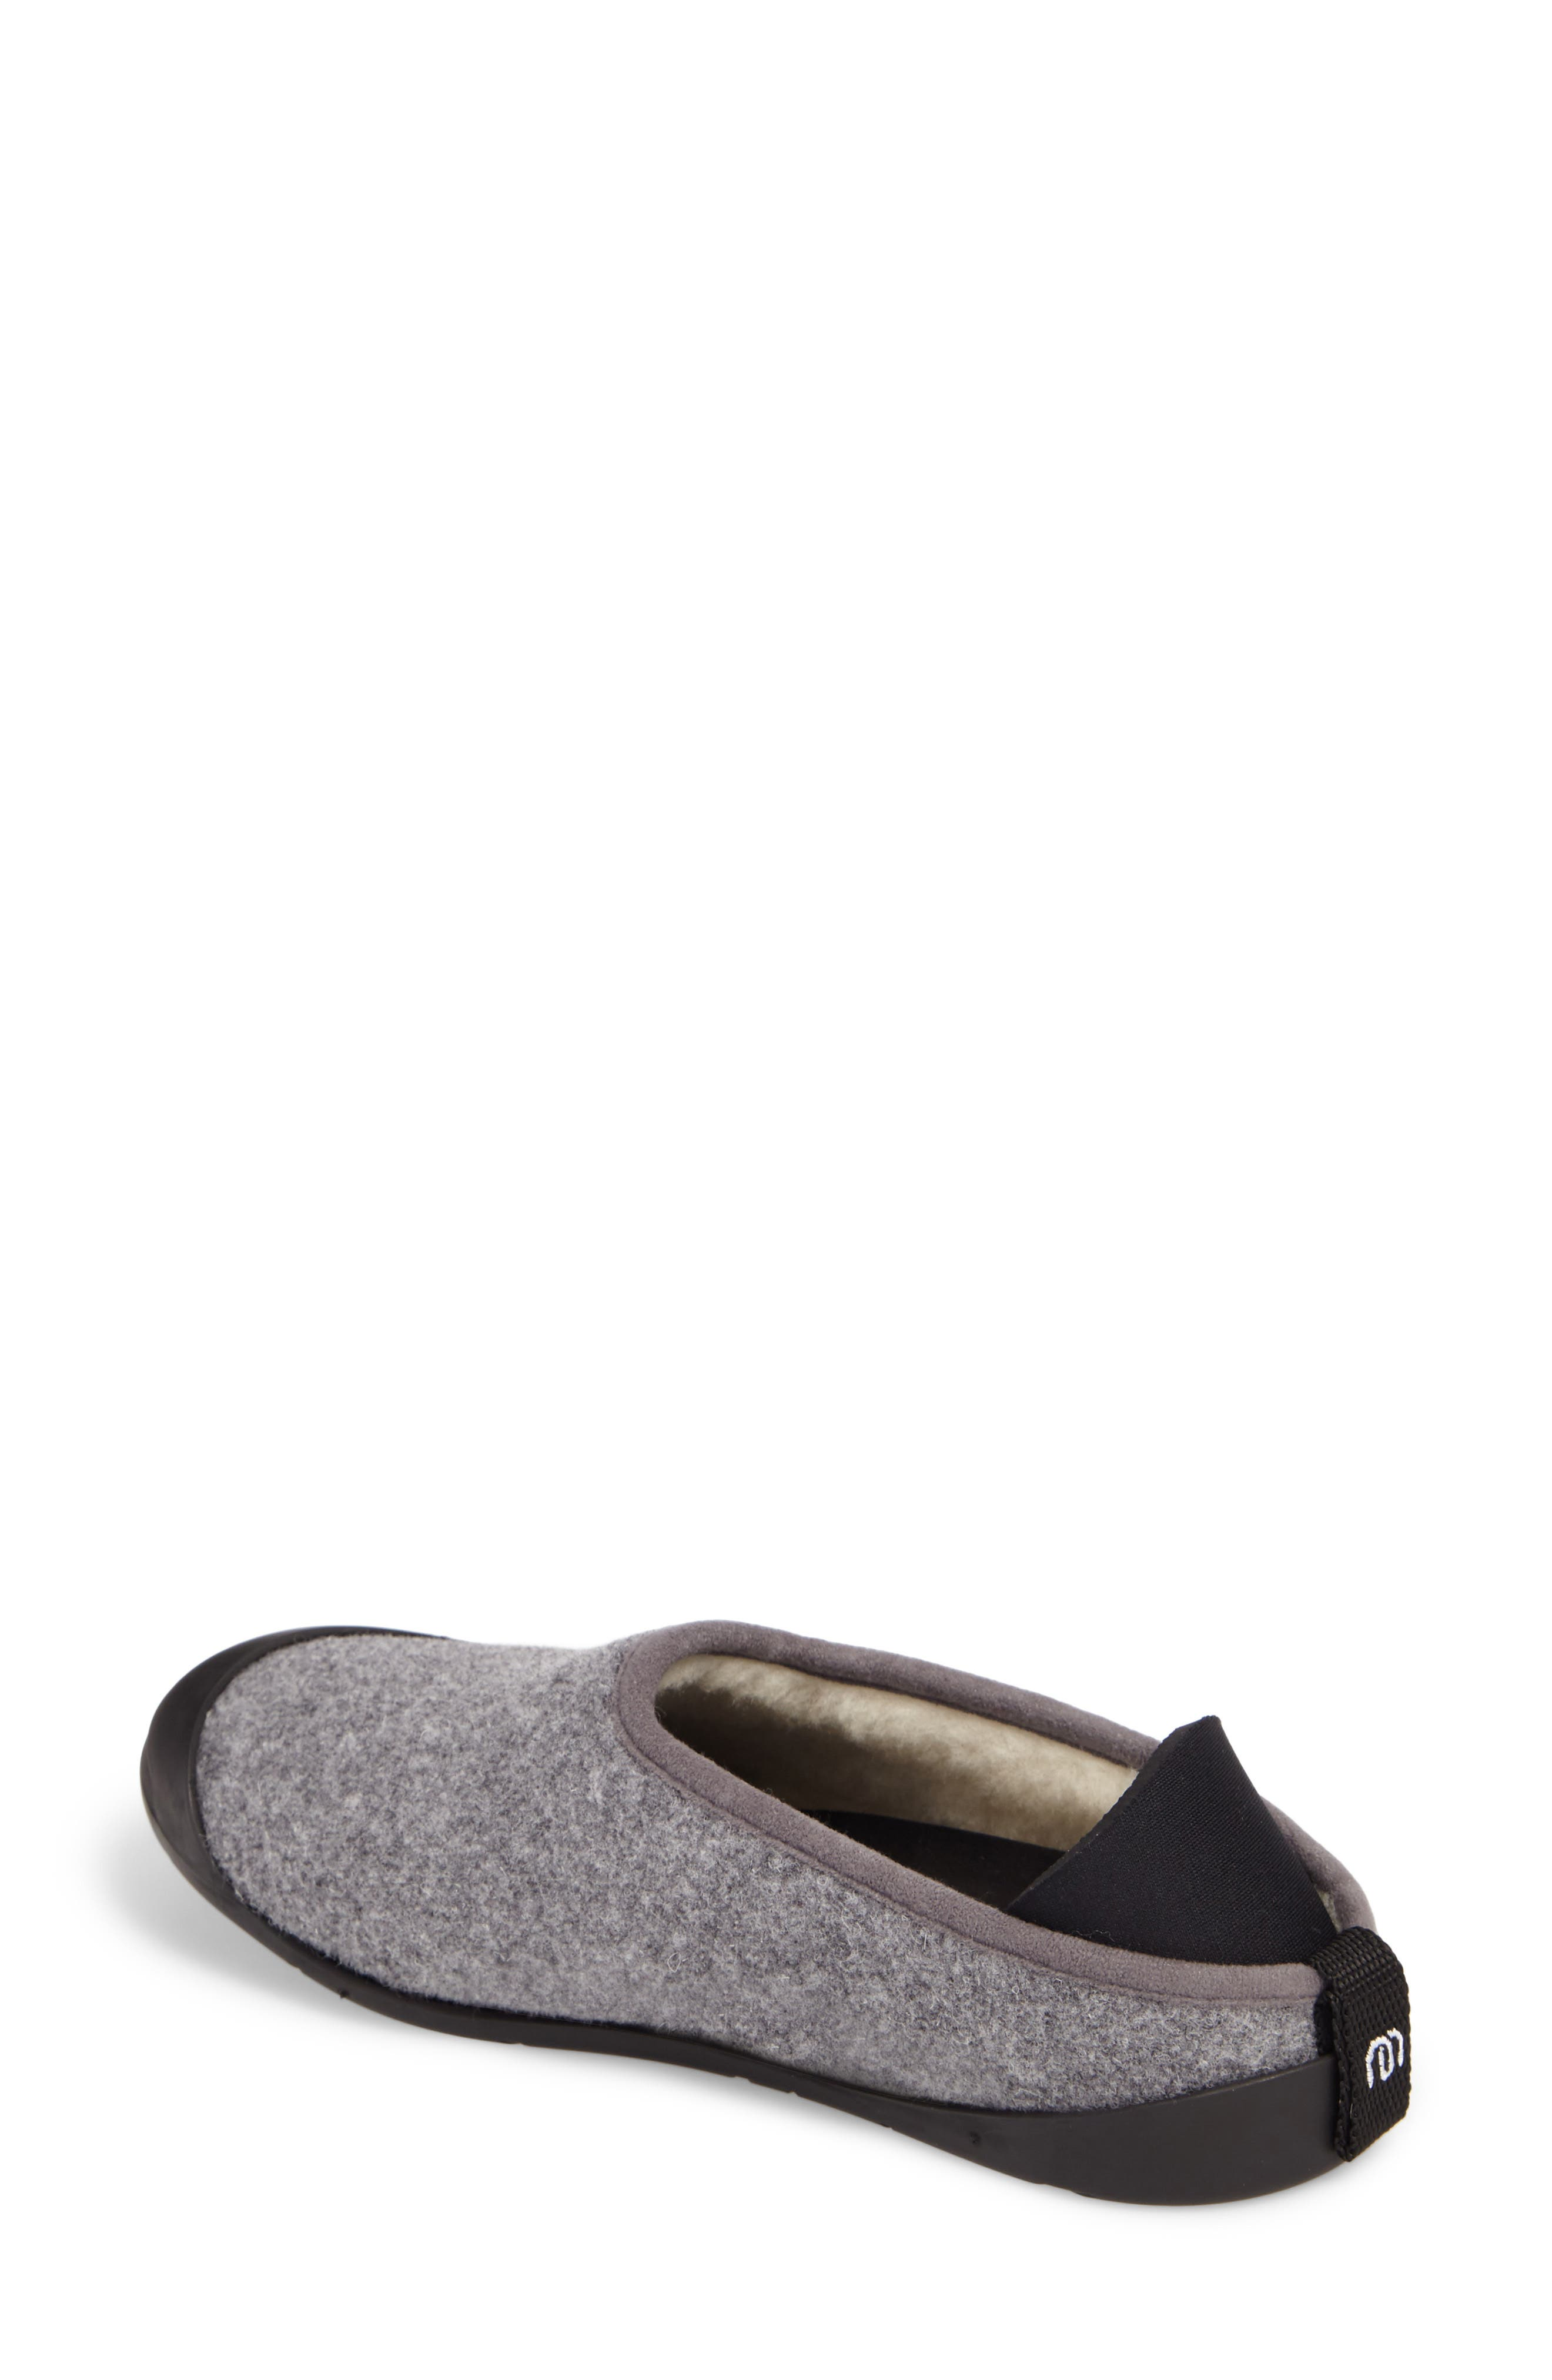 Classic Convertible Indoor/Outdoor Slipper,                             Alternate thumbnail 3, color,                             020